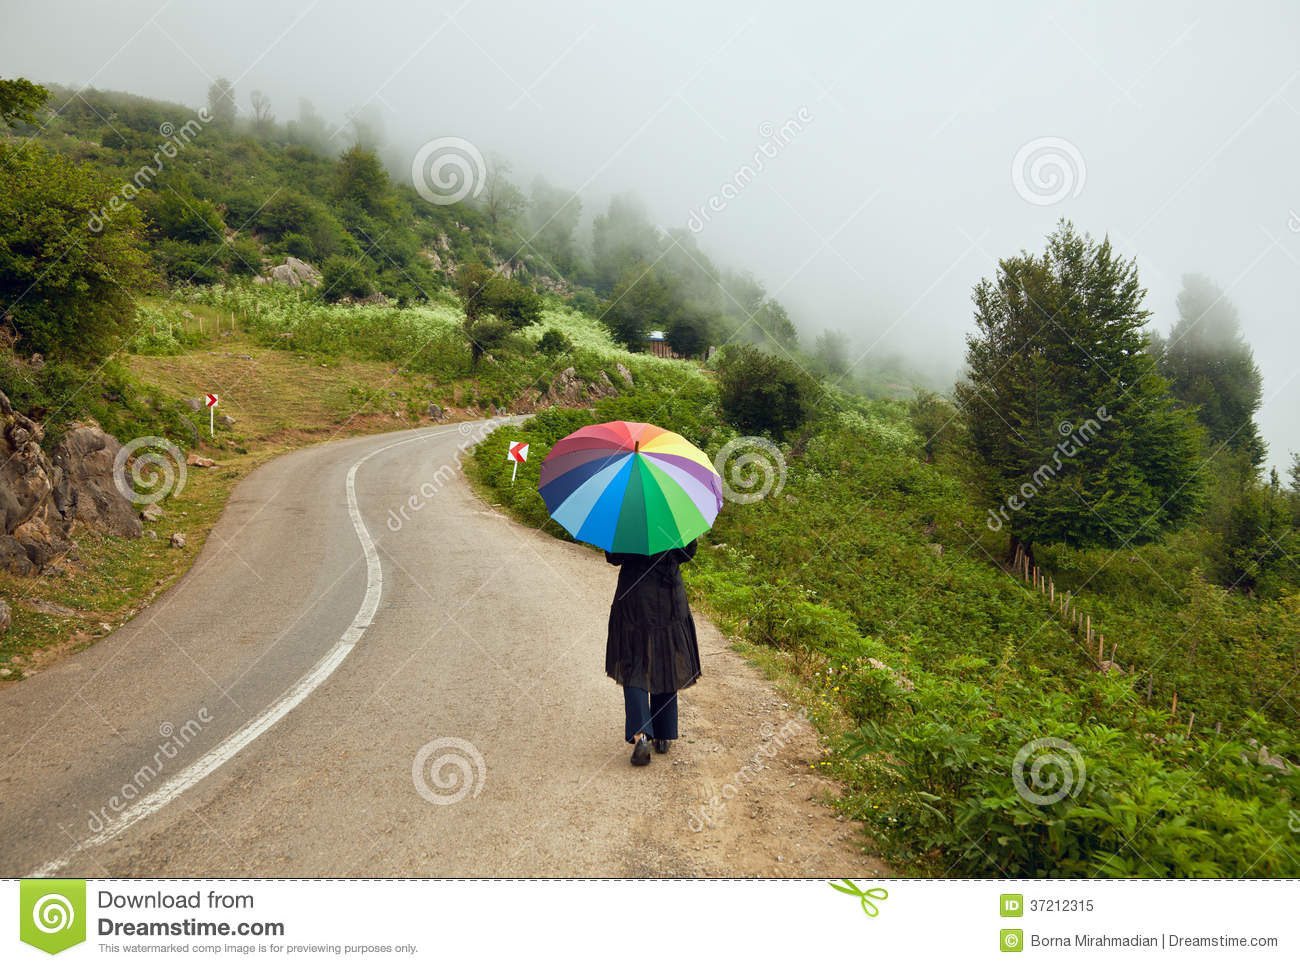 Woman With Colorful Umbrella Walking Down A Foggy Winding Road